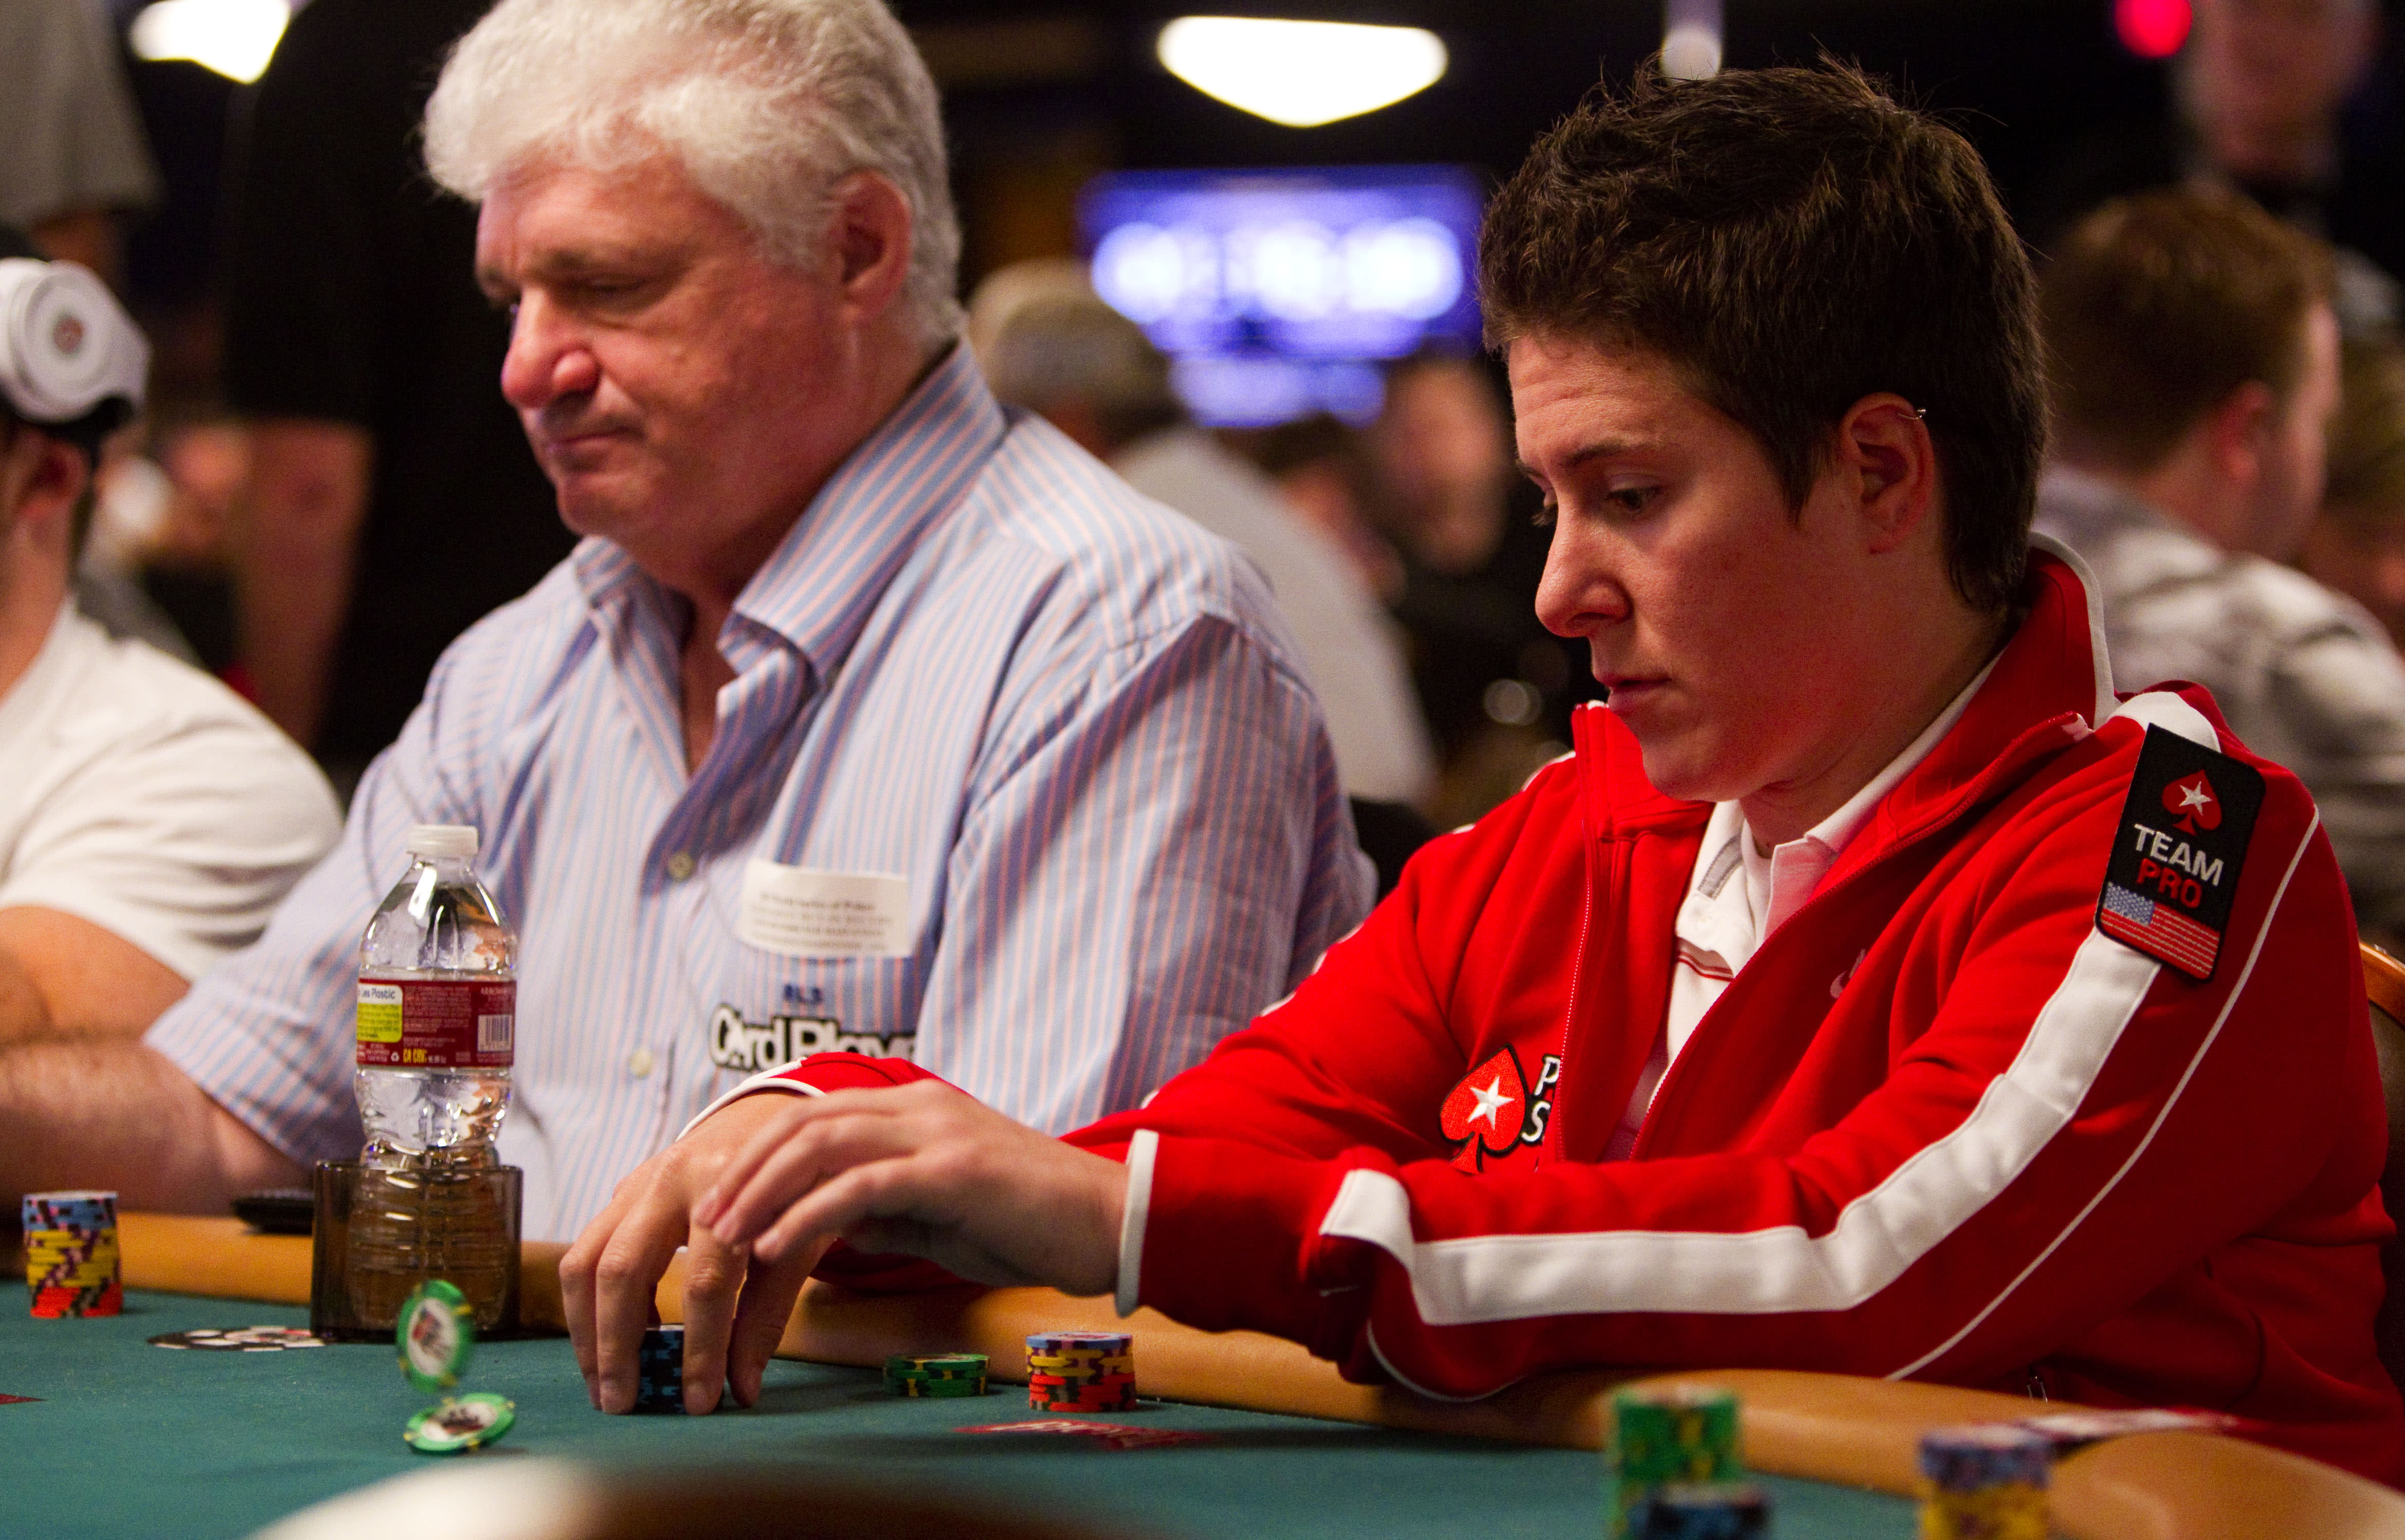 Some of the biggest hedge fund titans will face off at the poker table this week